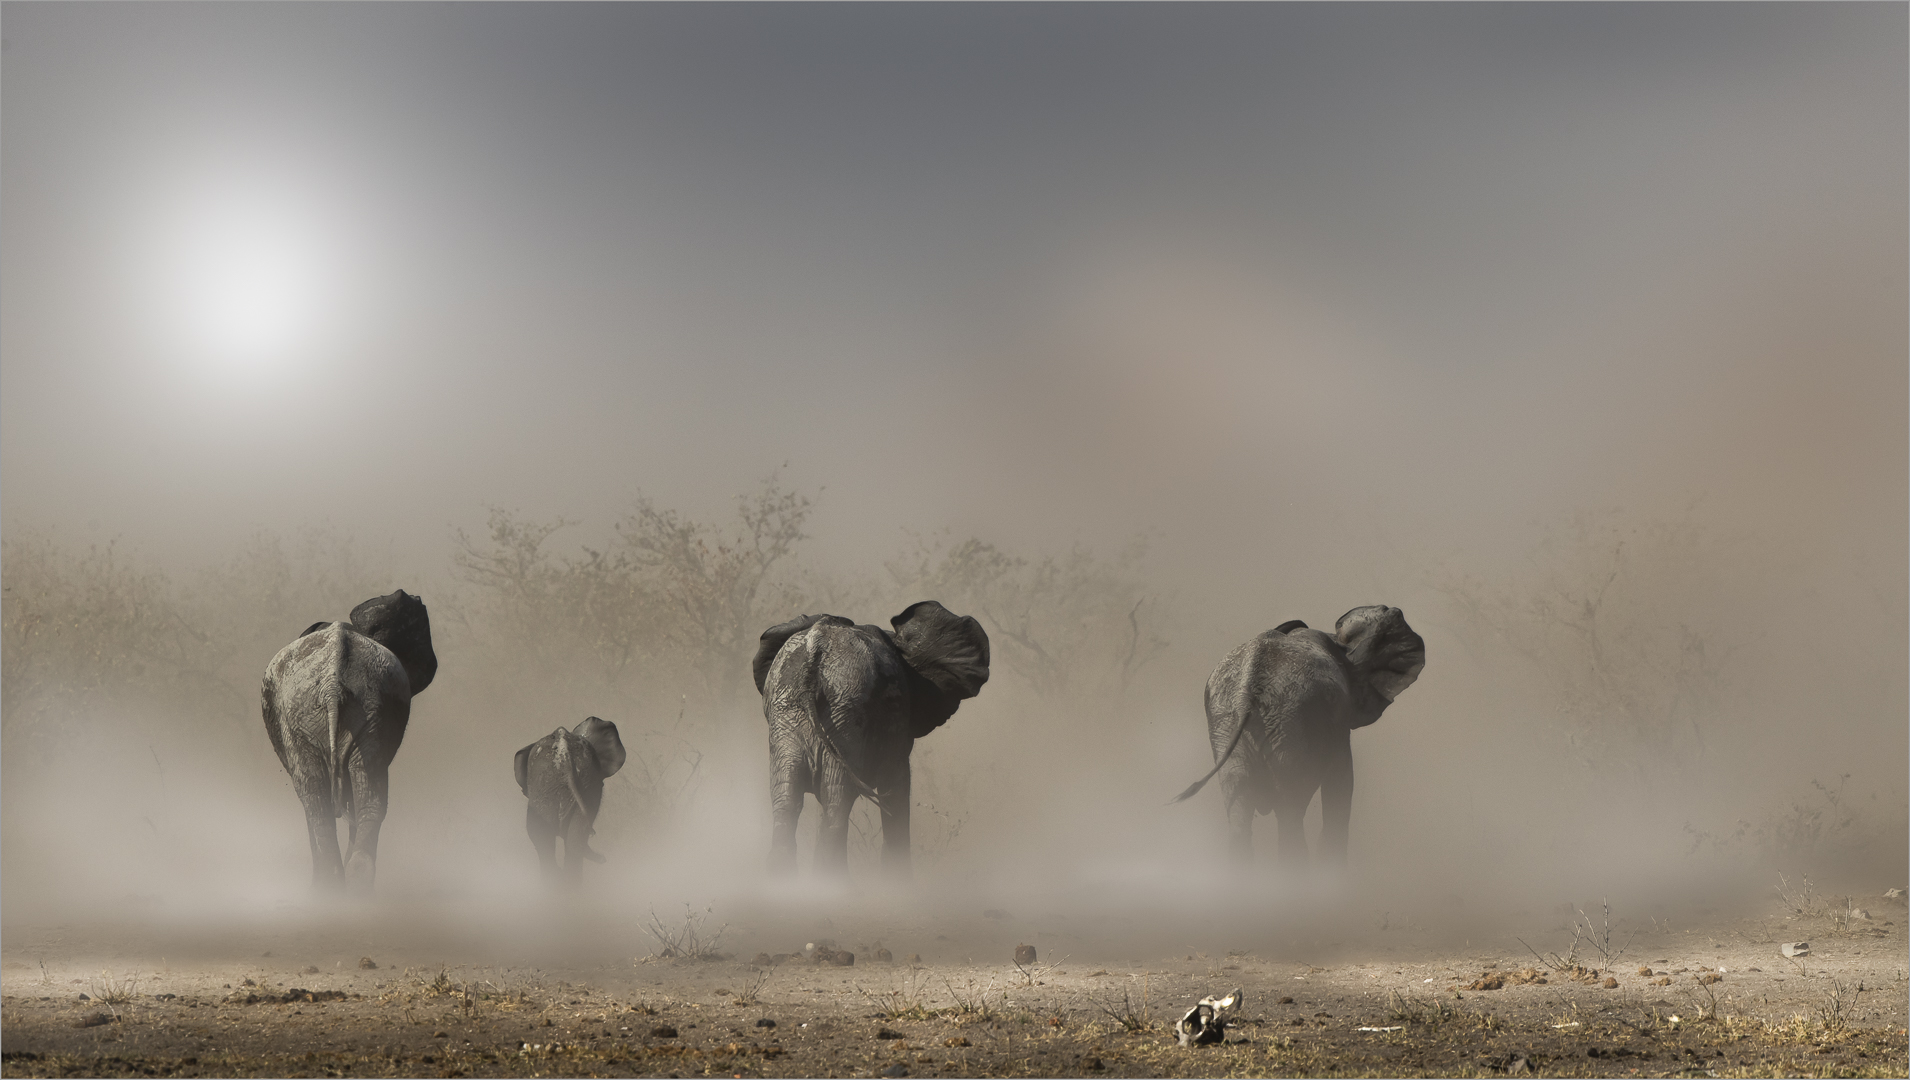 Giants in the Dust-ANNEMARIE DU PLESSIS.